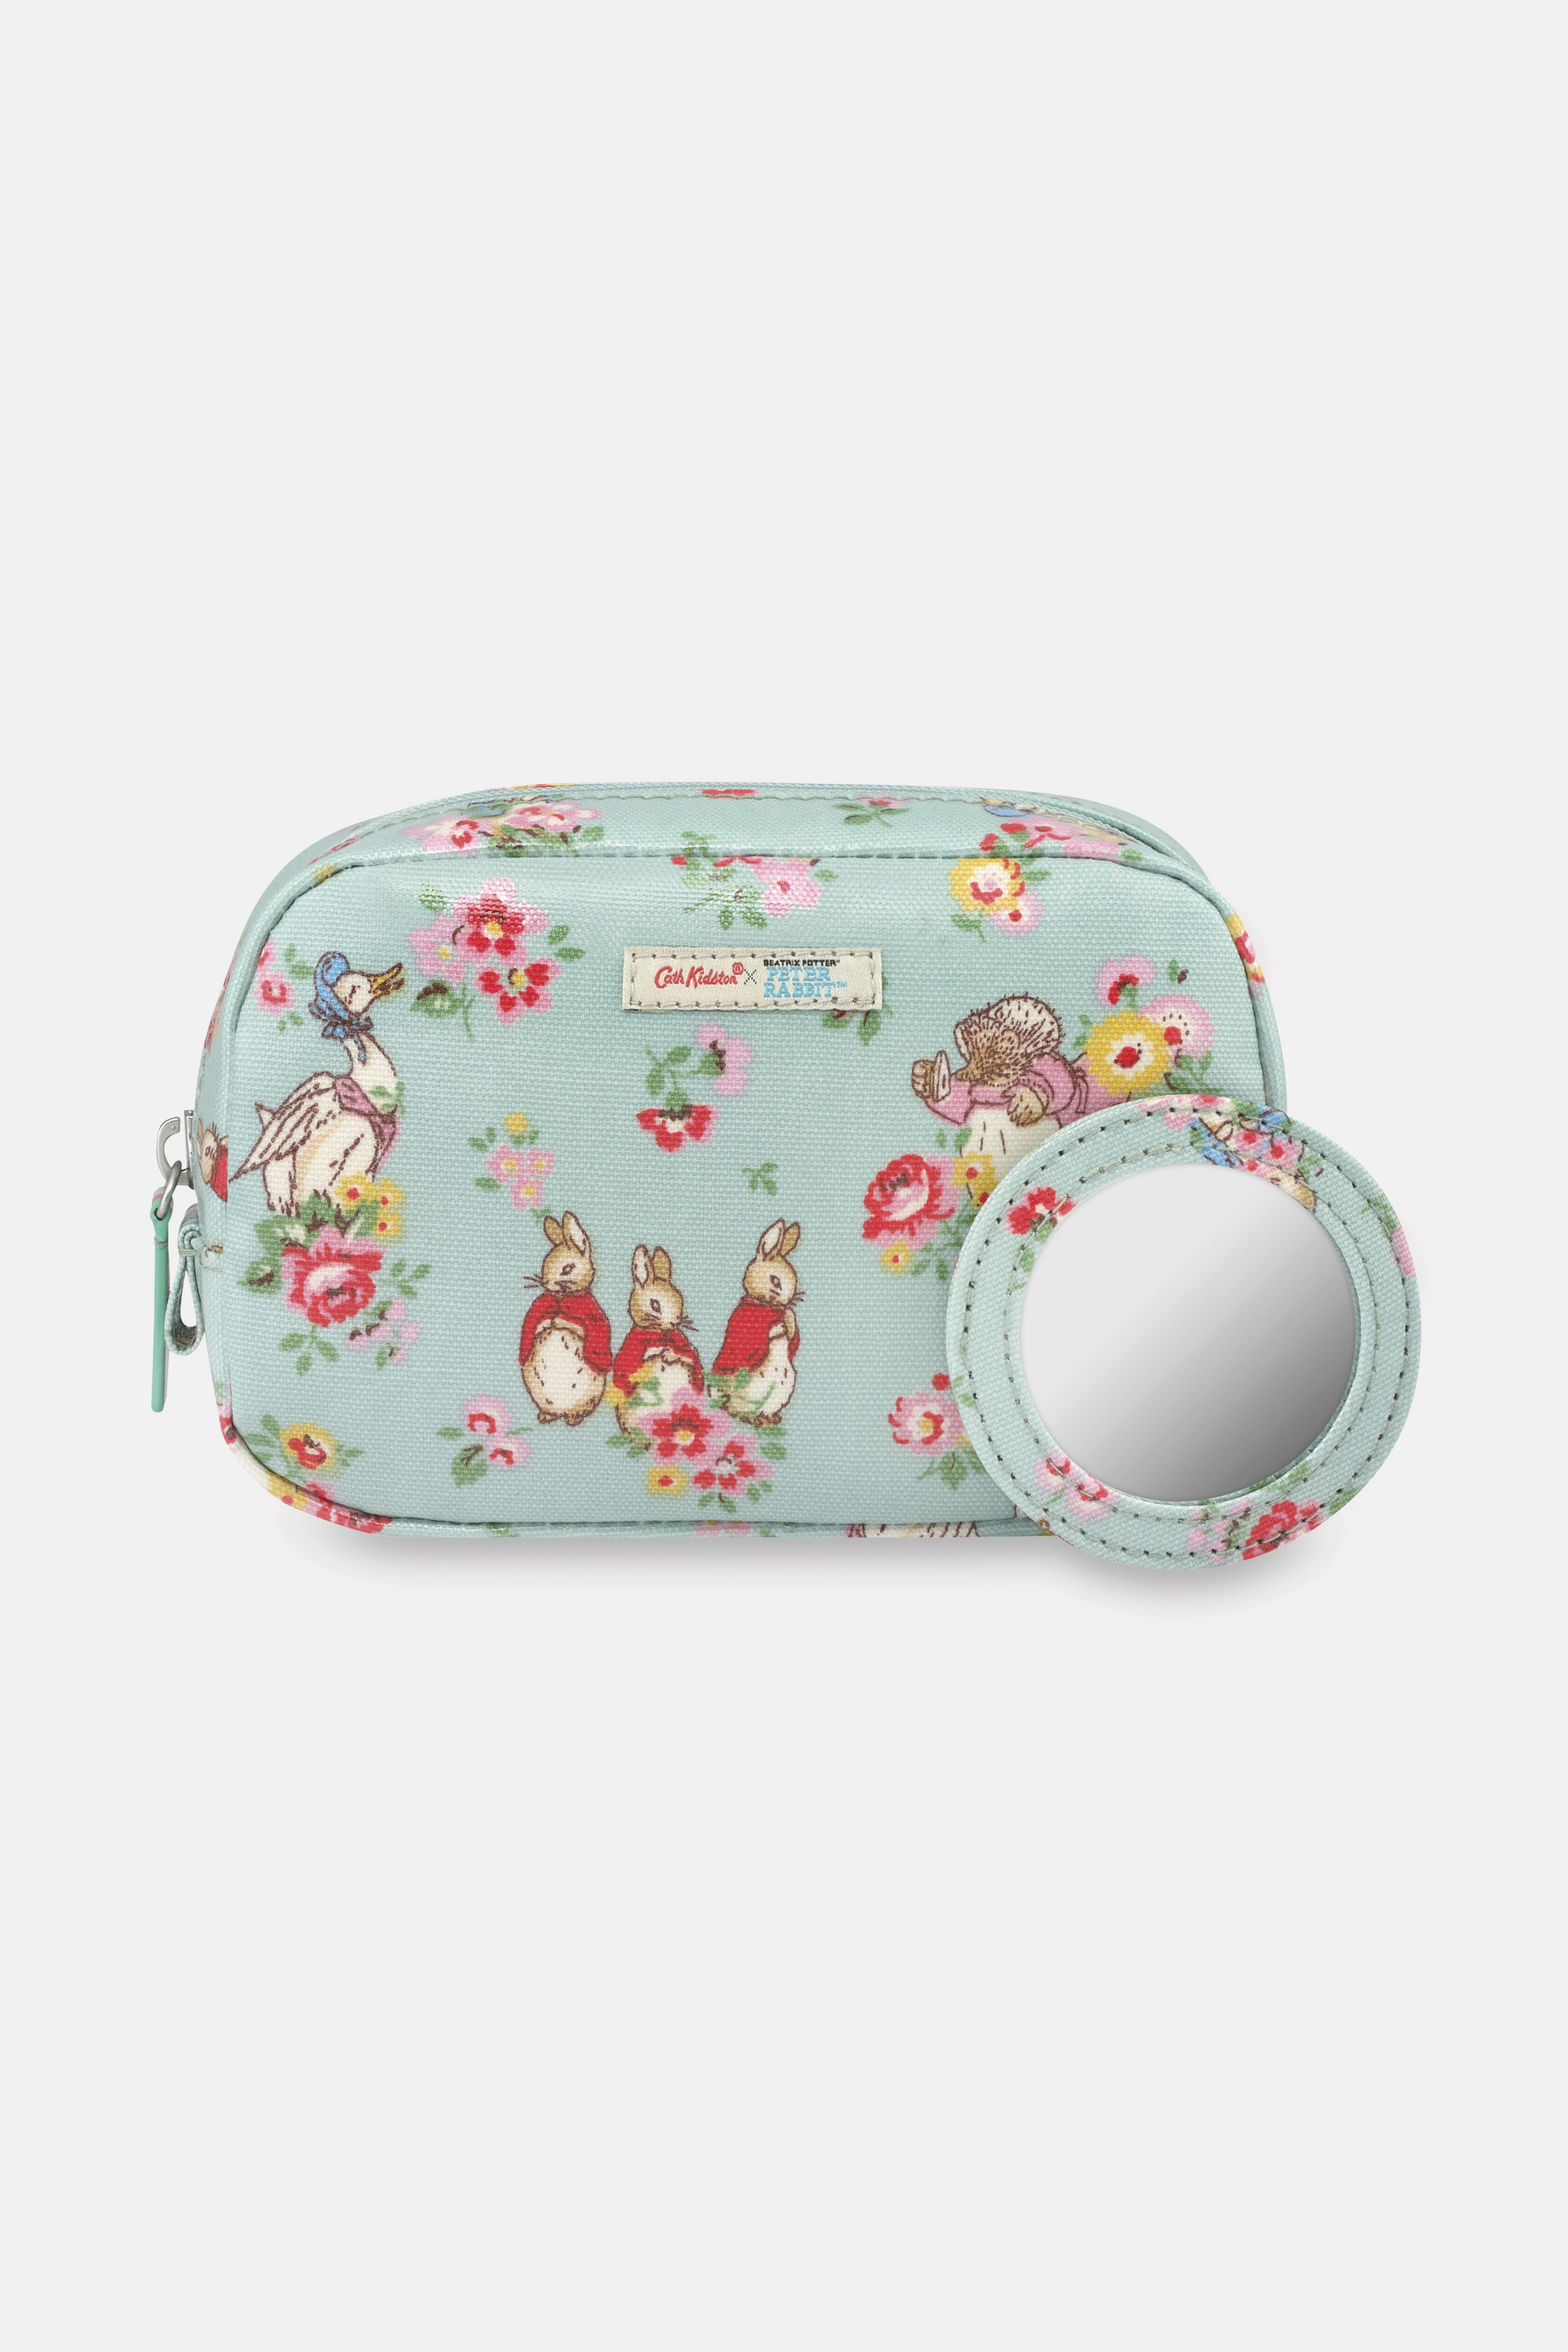 Cath Kidston Peter Rabbit Ditsy Classic Make Up Bag in Mint